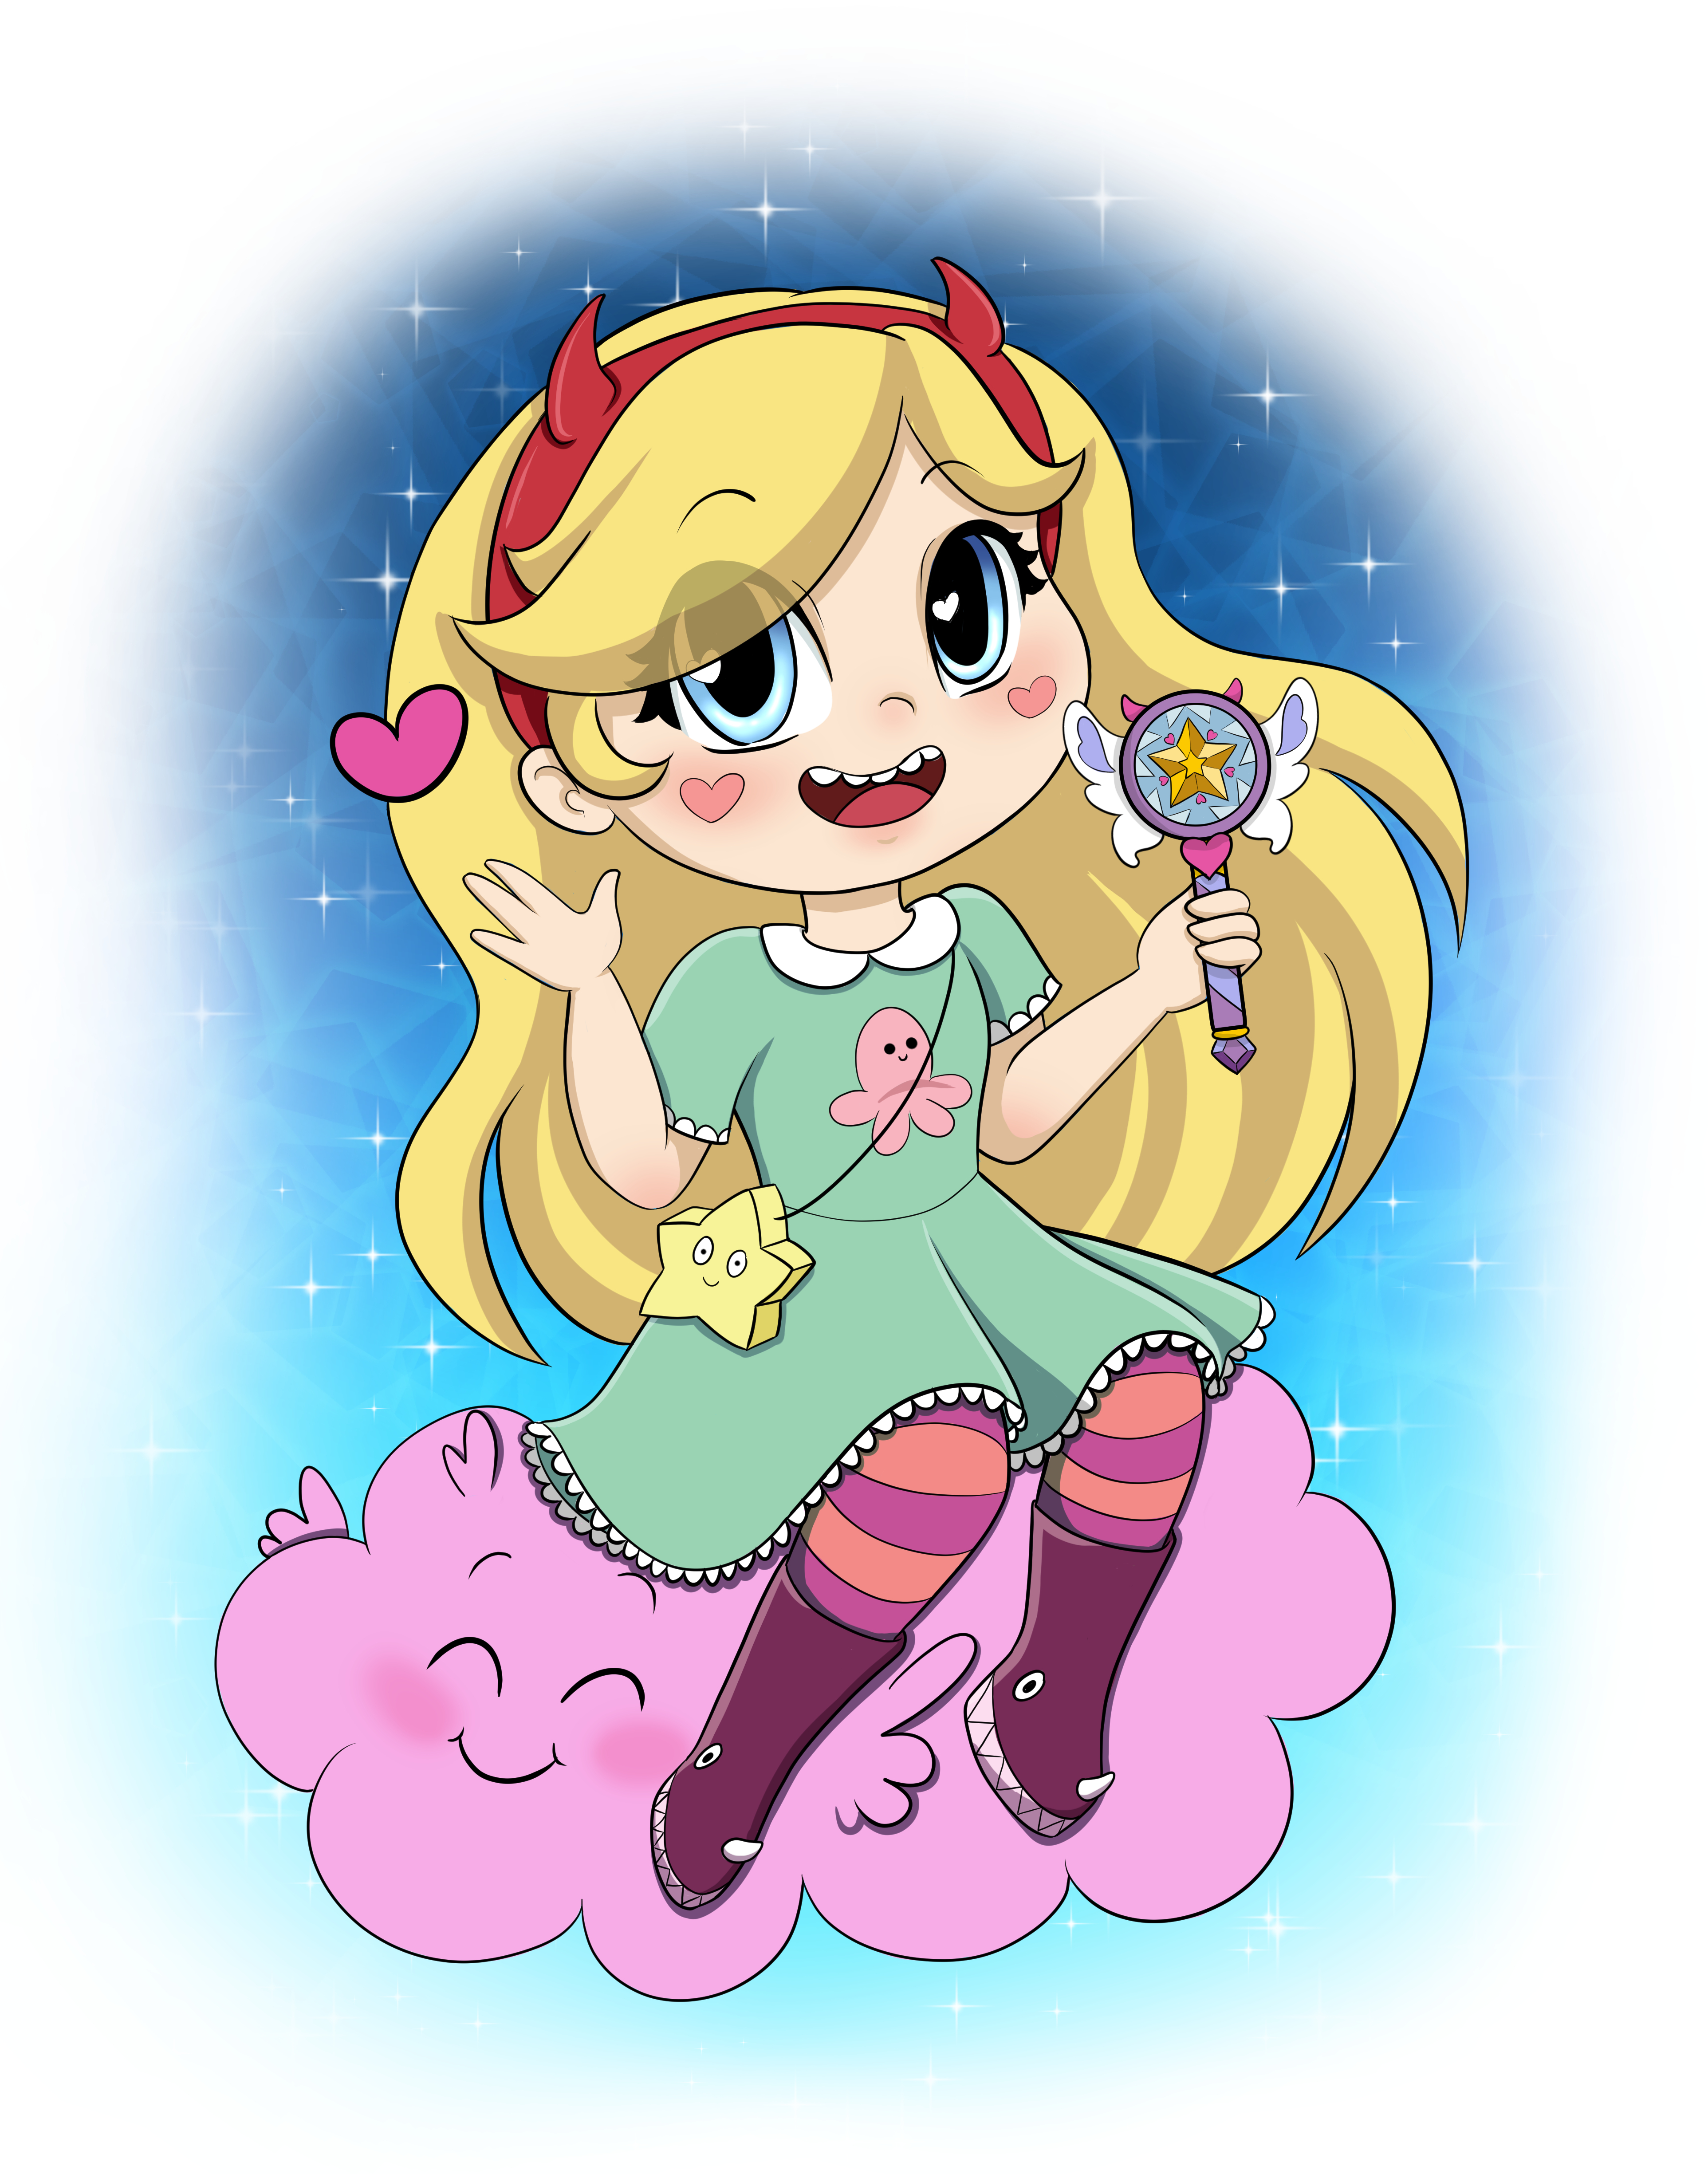 Star Butterfly - octo